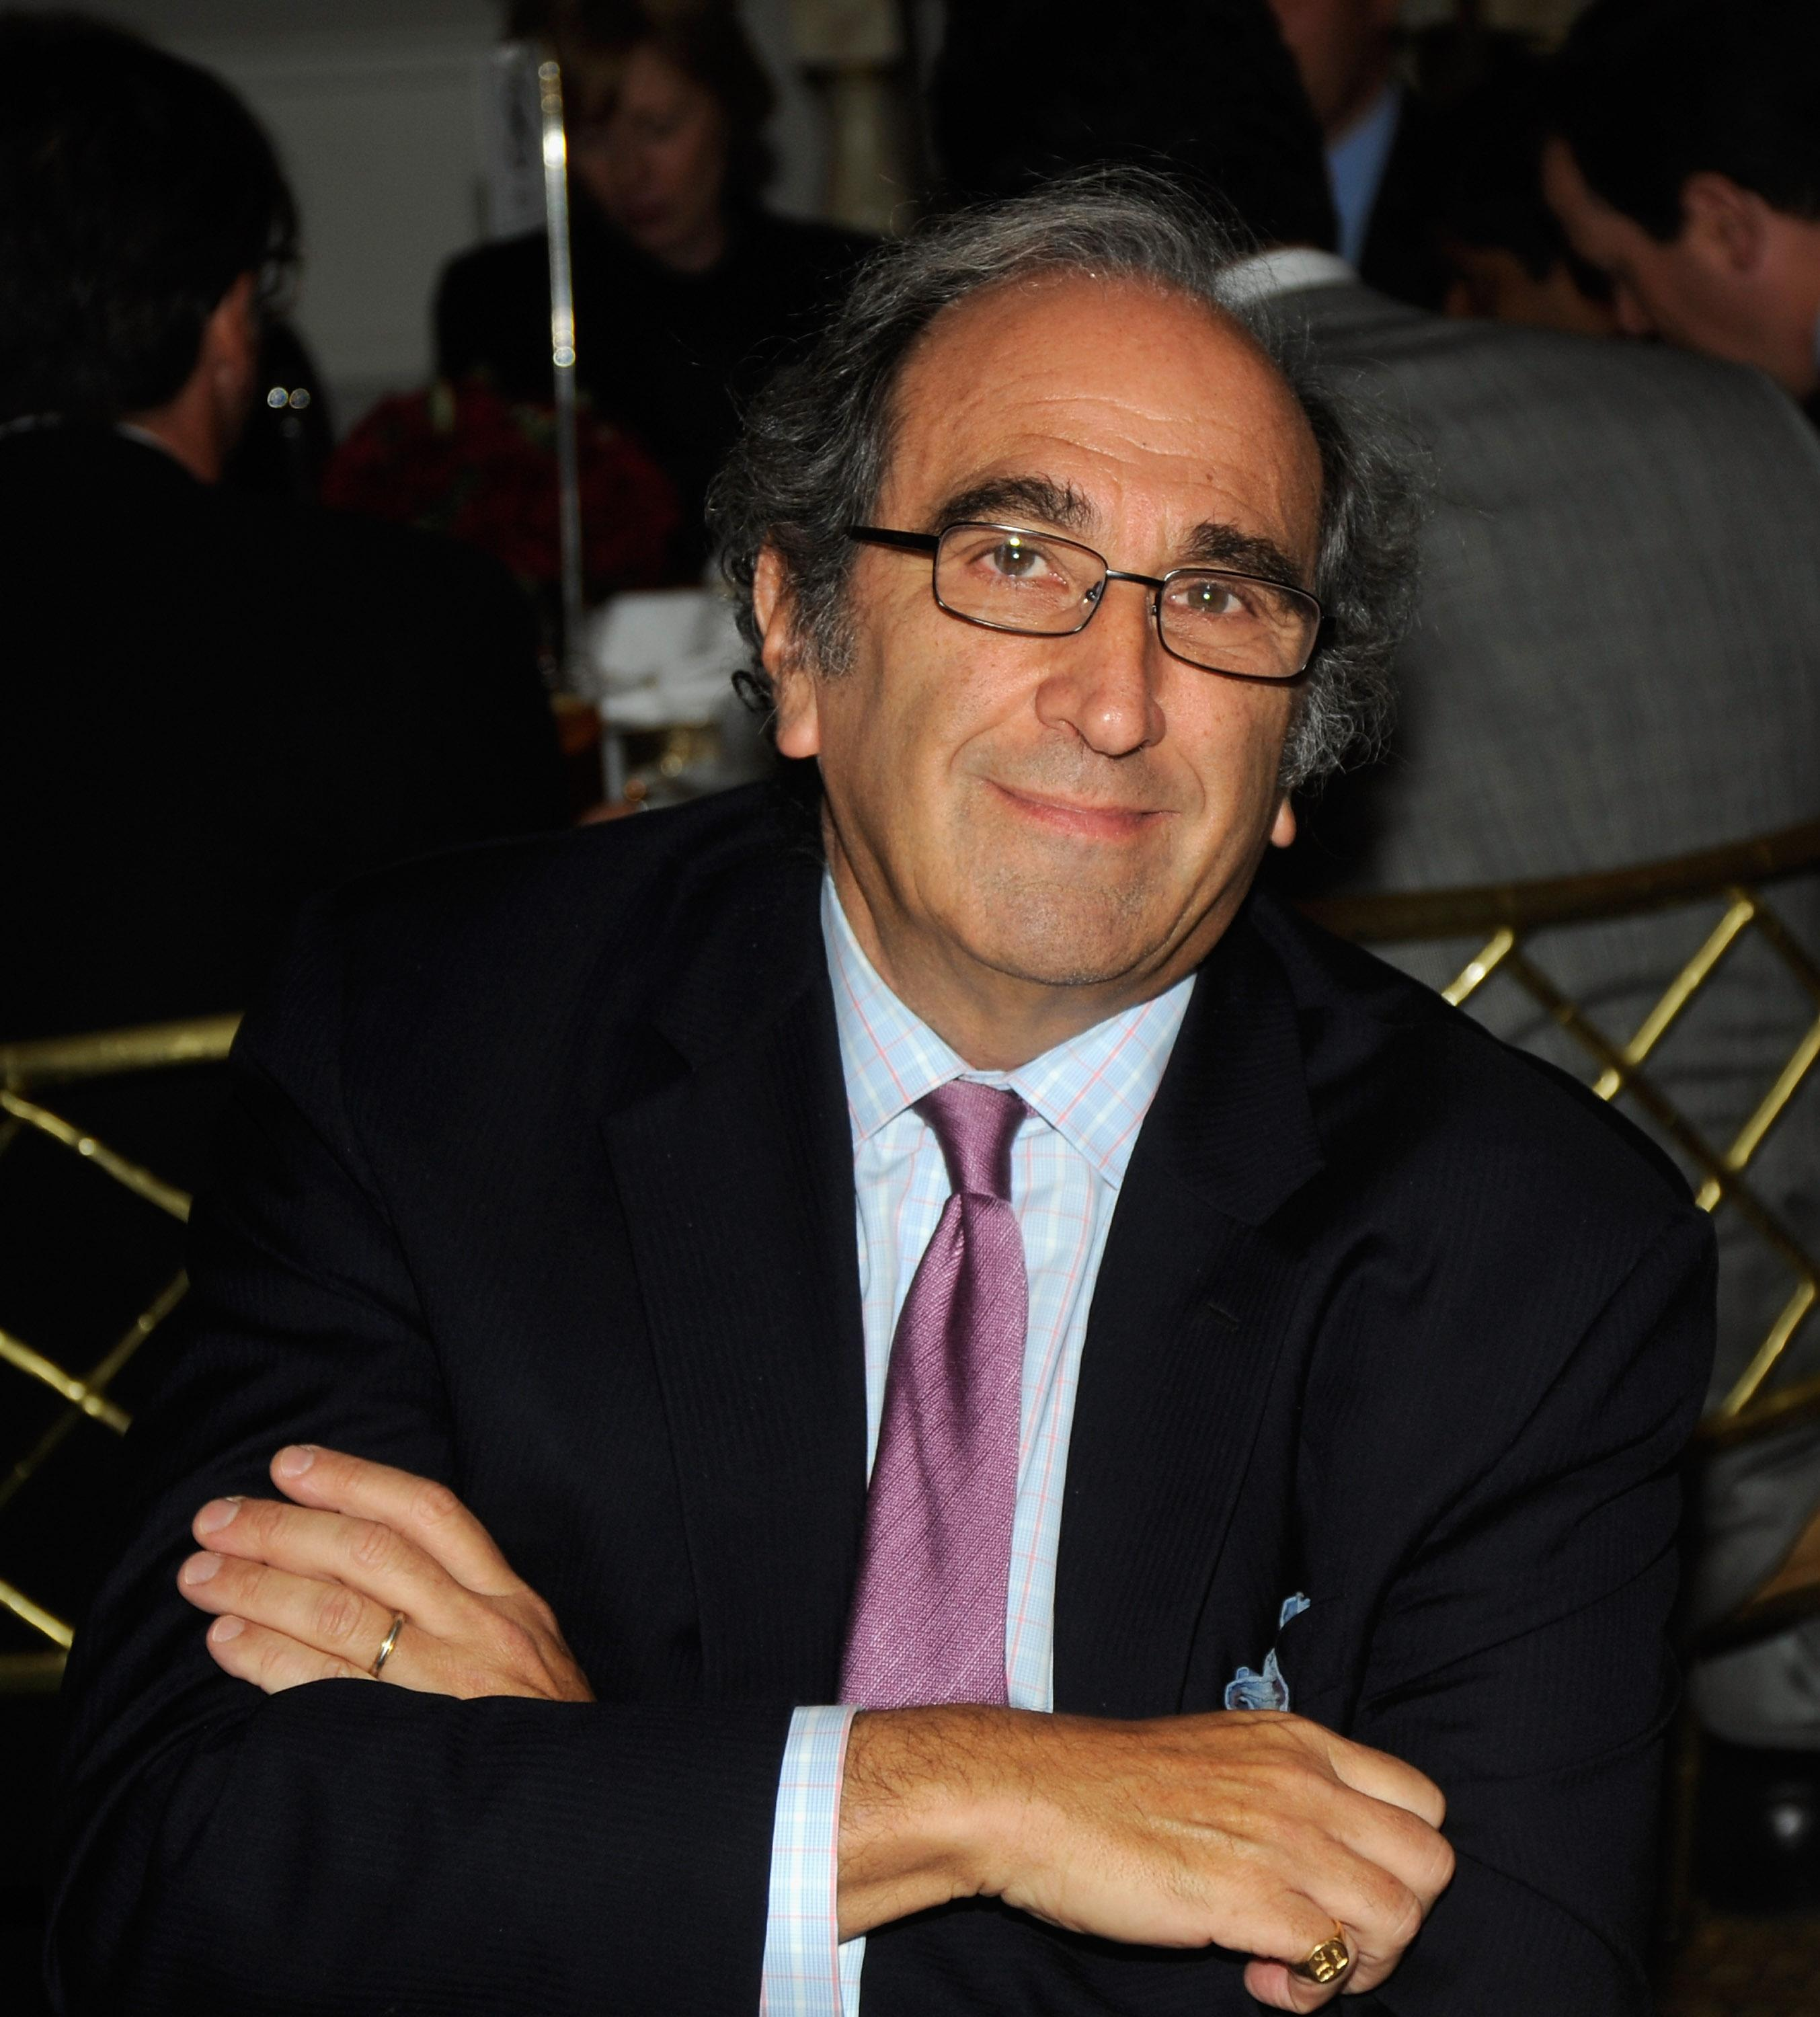 Andrew Lack In Talks To Return To Stumbling NBC News